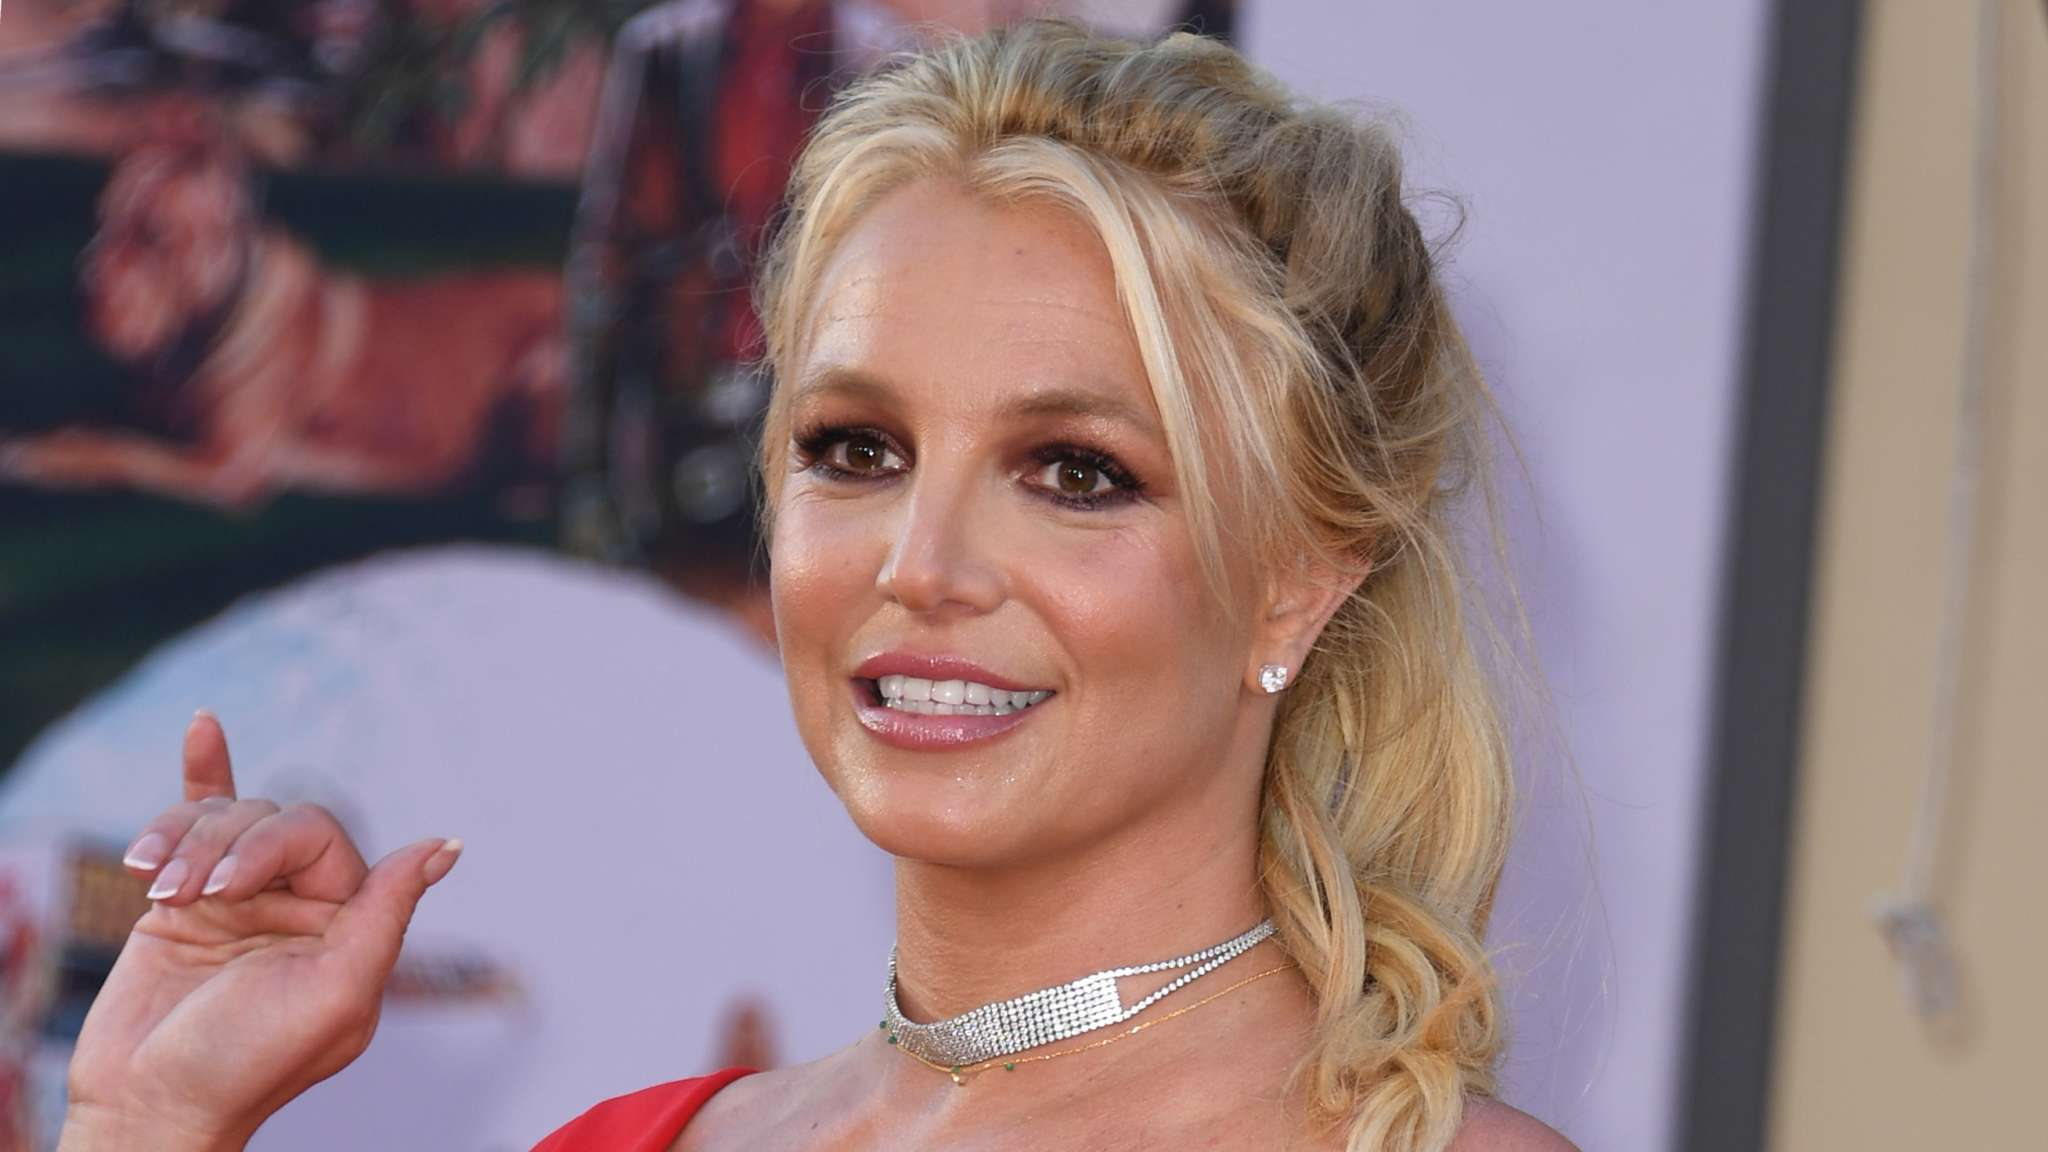 Britney Spears called police and reported herself as a victim of abuse the night before her public testimony, the source says.